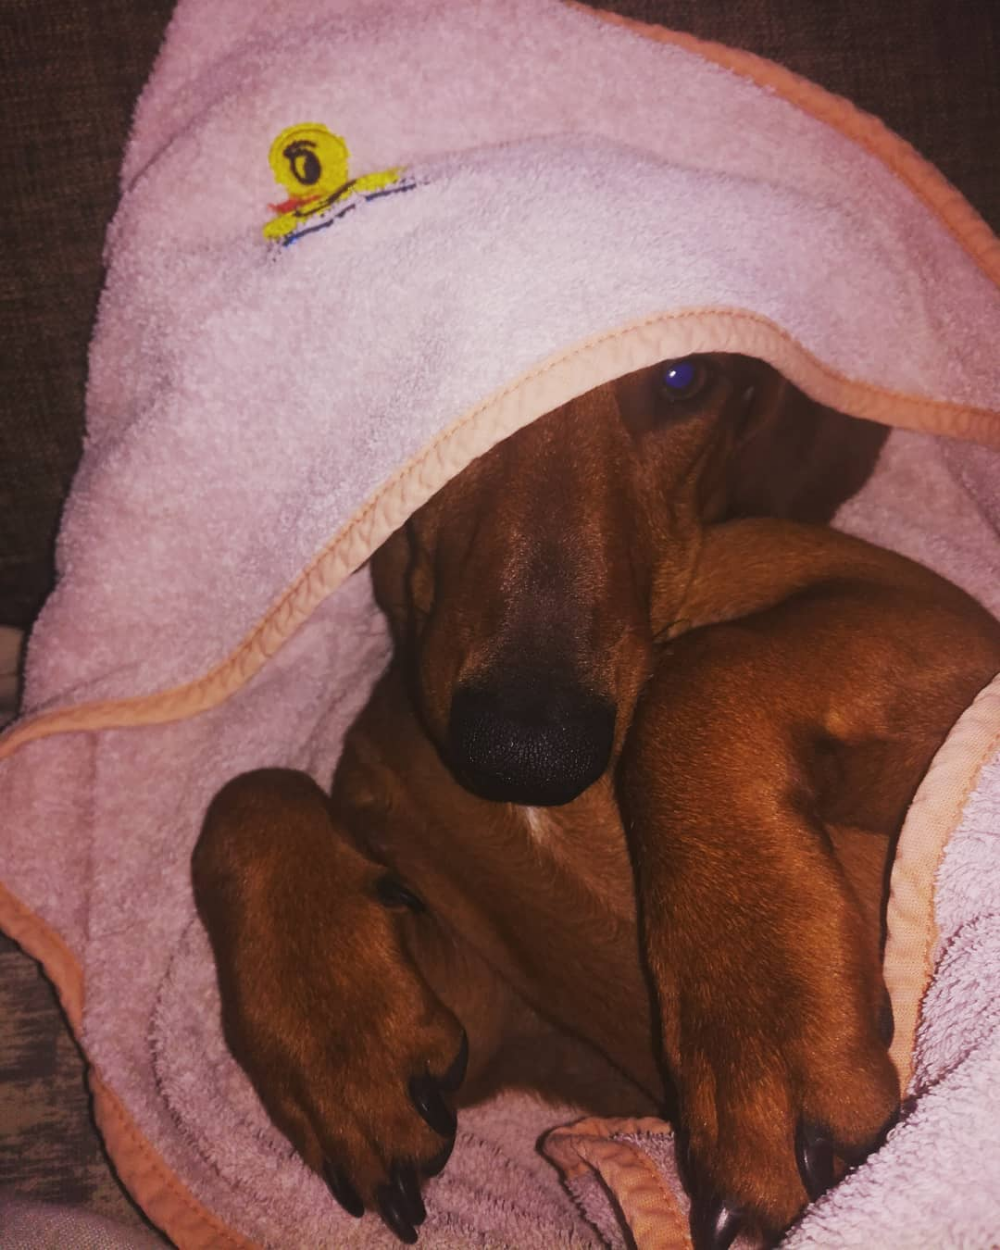 14 Things Only Dachshund Parents Understand The Paws Dachshund Puppy Miniature Dachshund Pets Dachshund